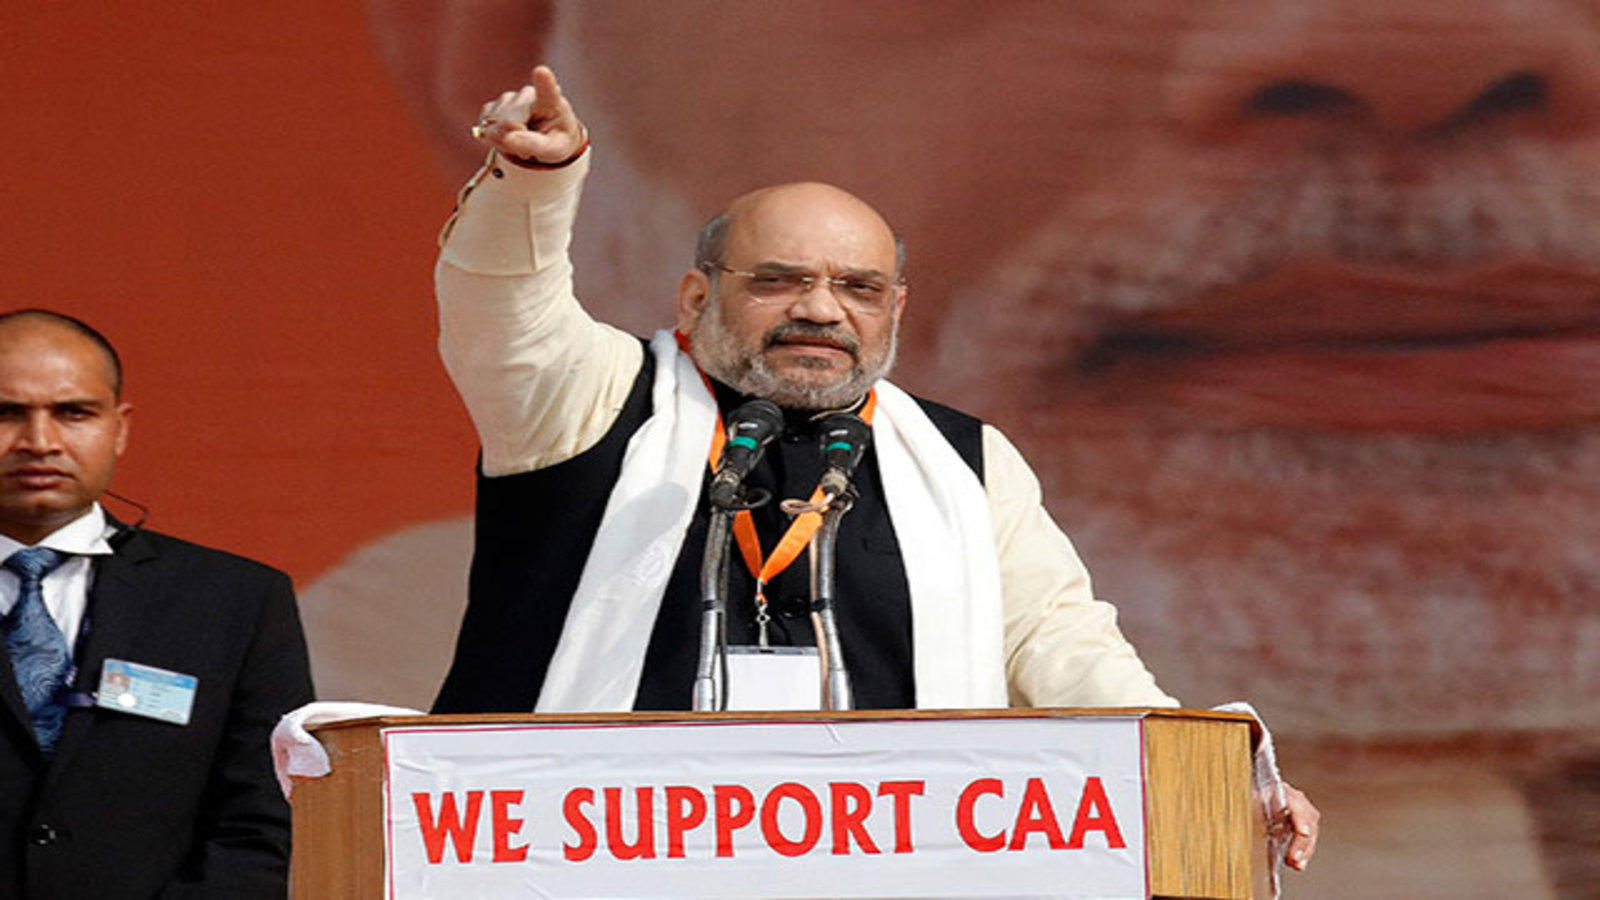 caa-will-not-be-withdrawn-says-amit-shah-in-lucknow